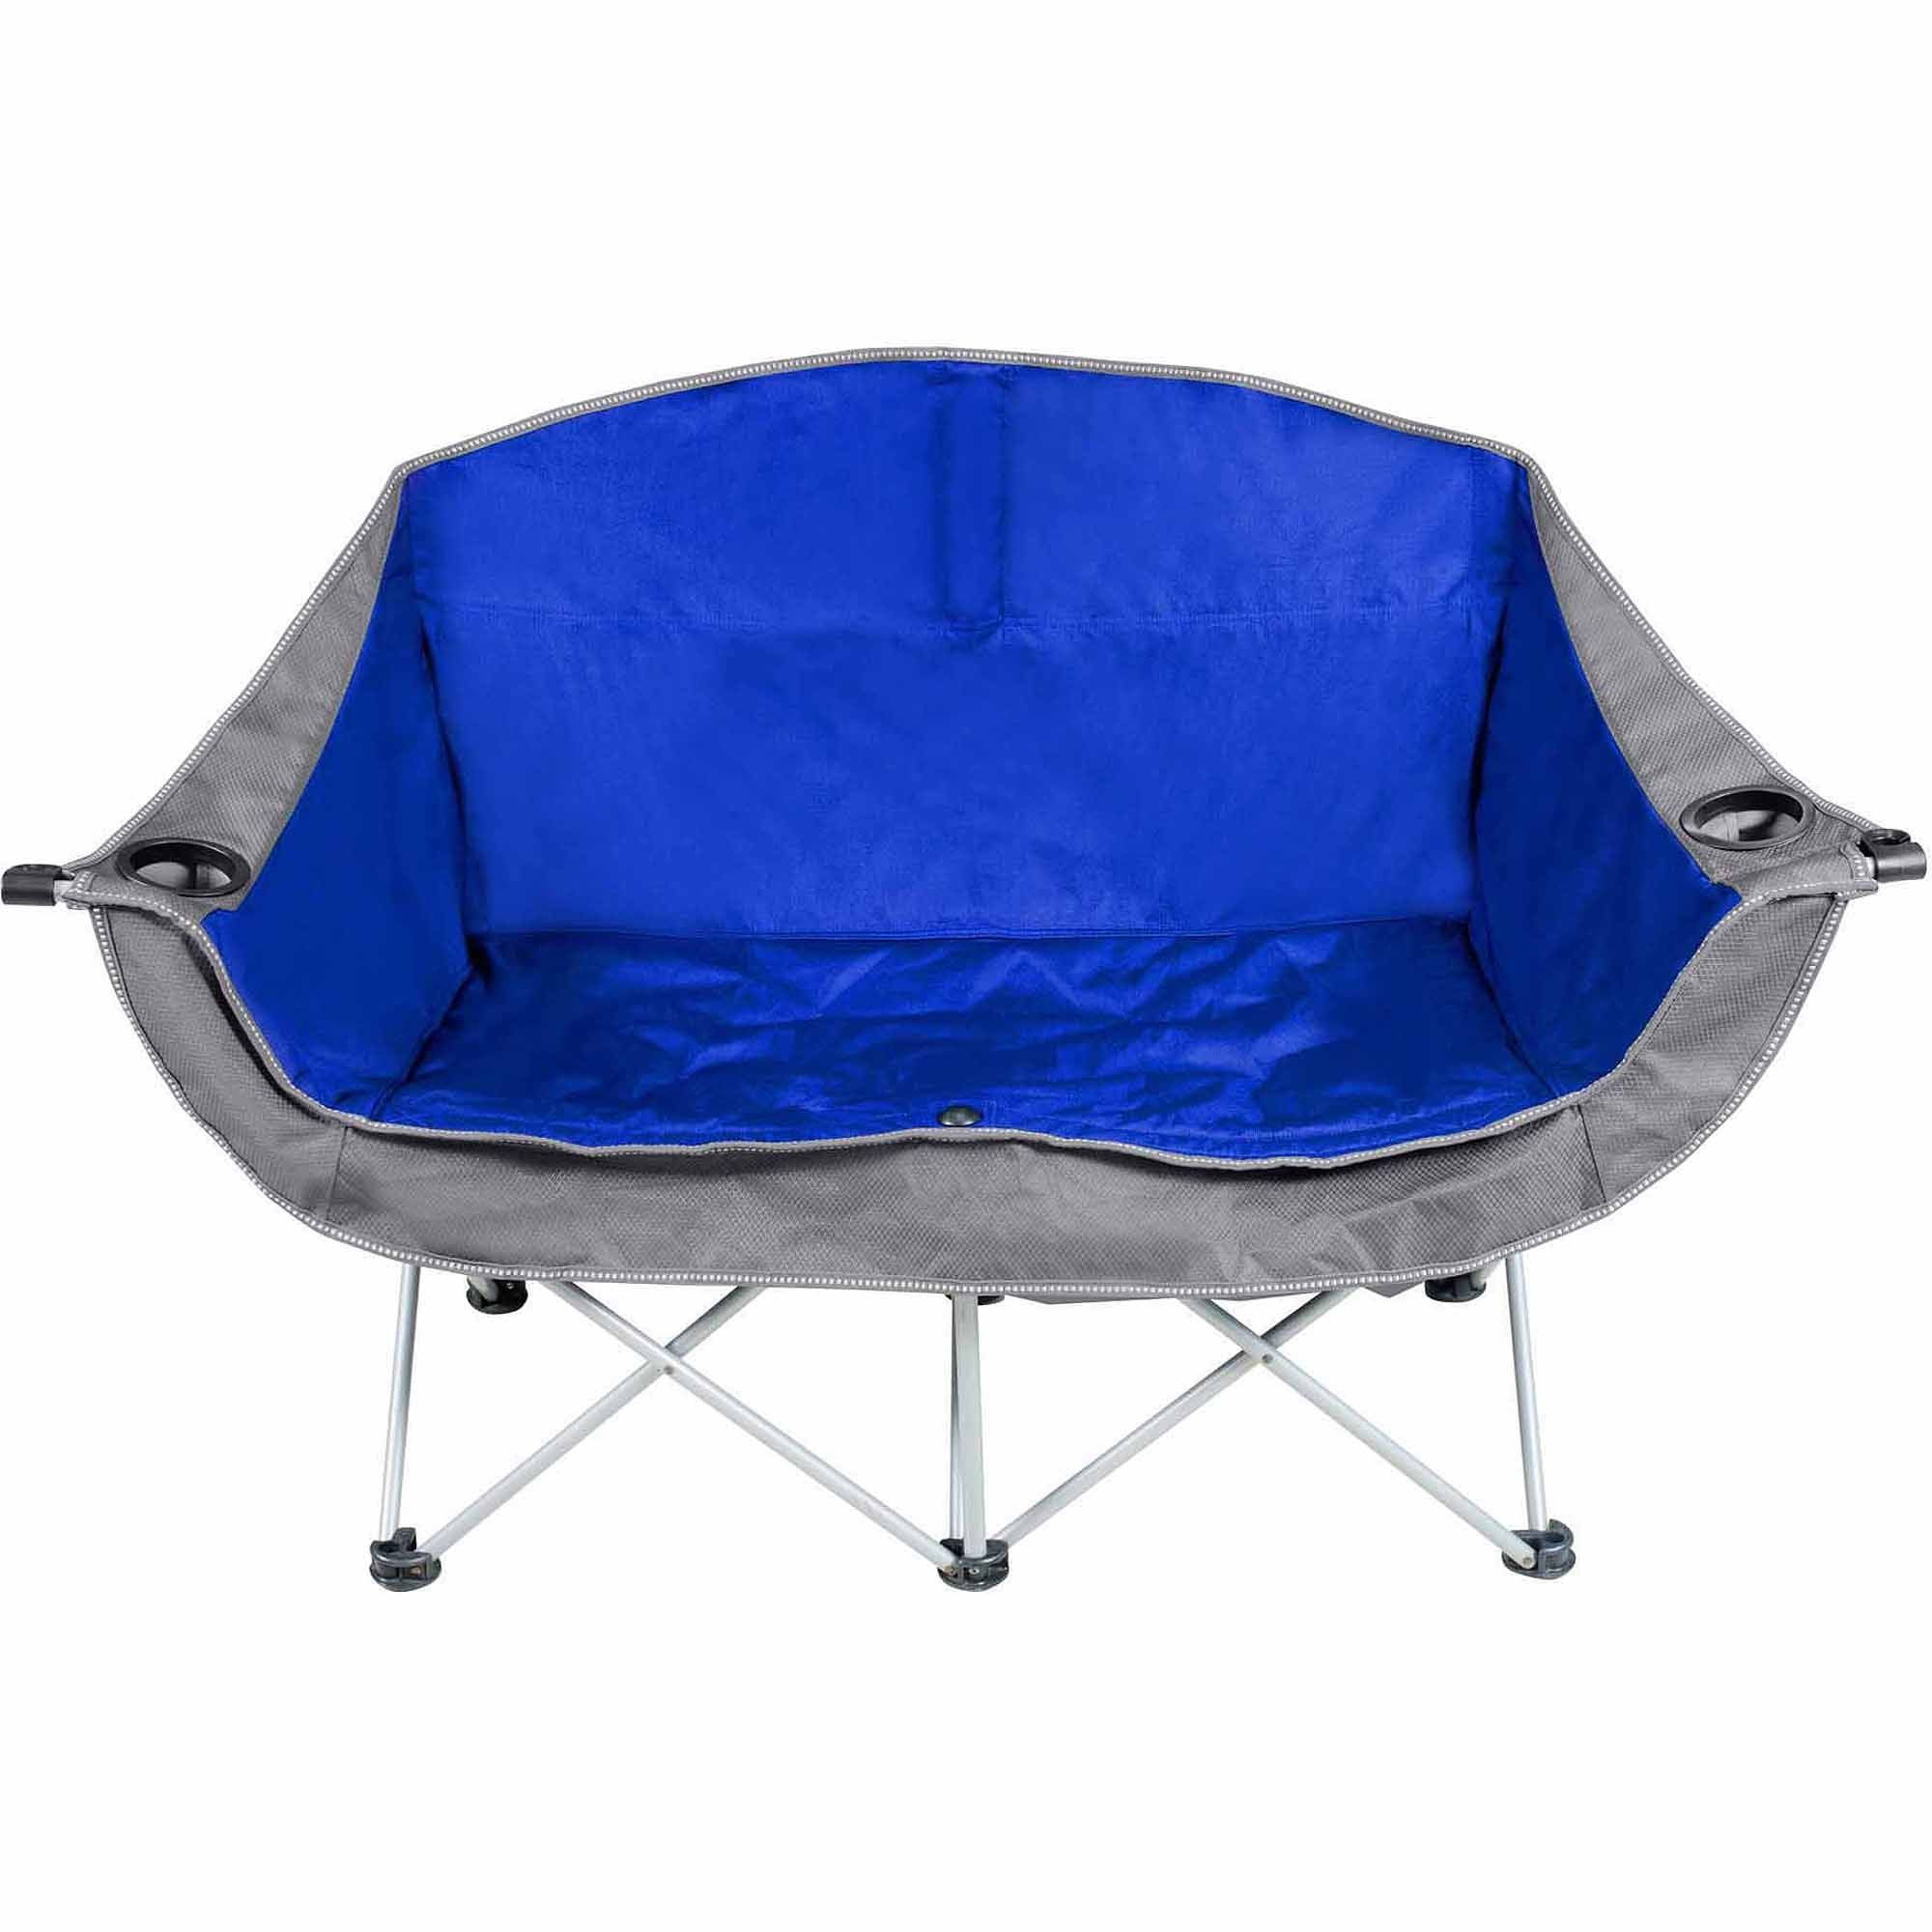 Double Seat Folding Camping Chairs